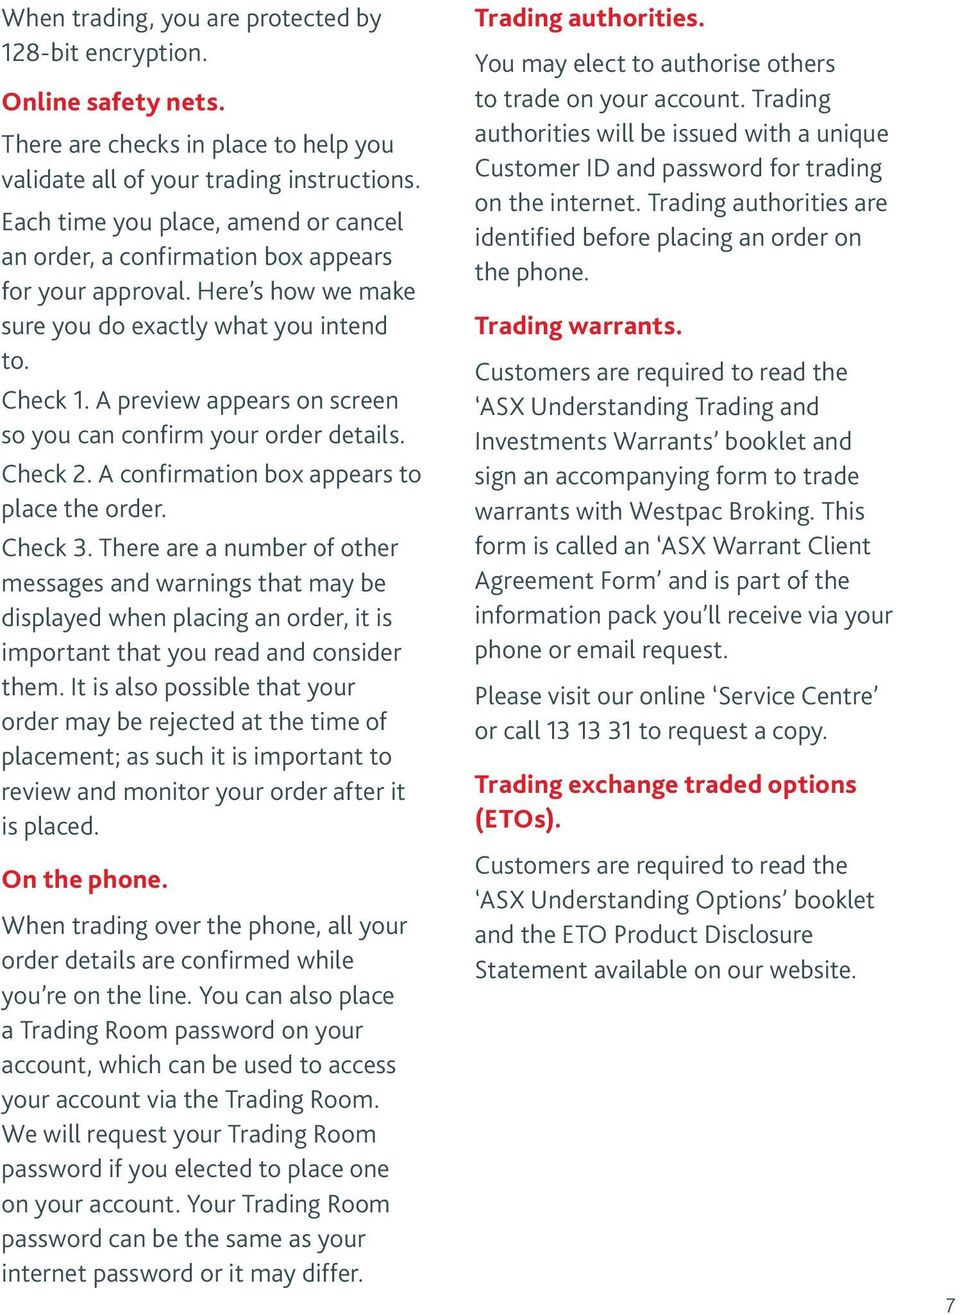 Asx explanatory booklet understanding options trading